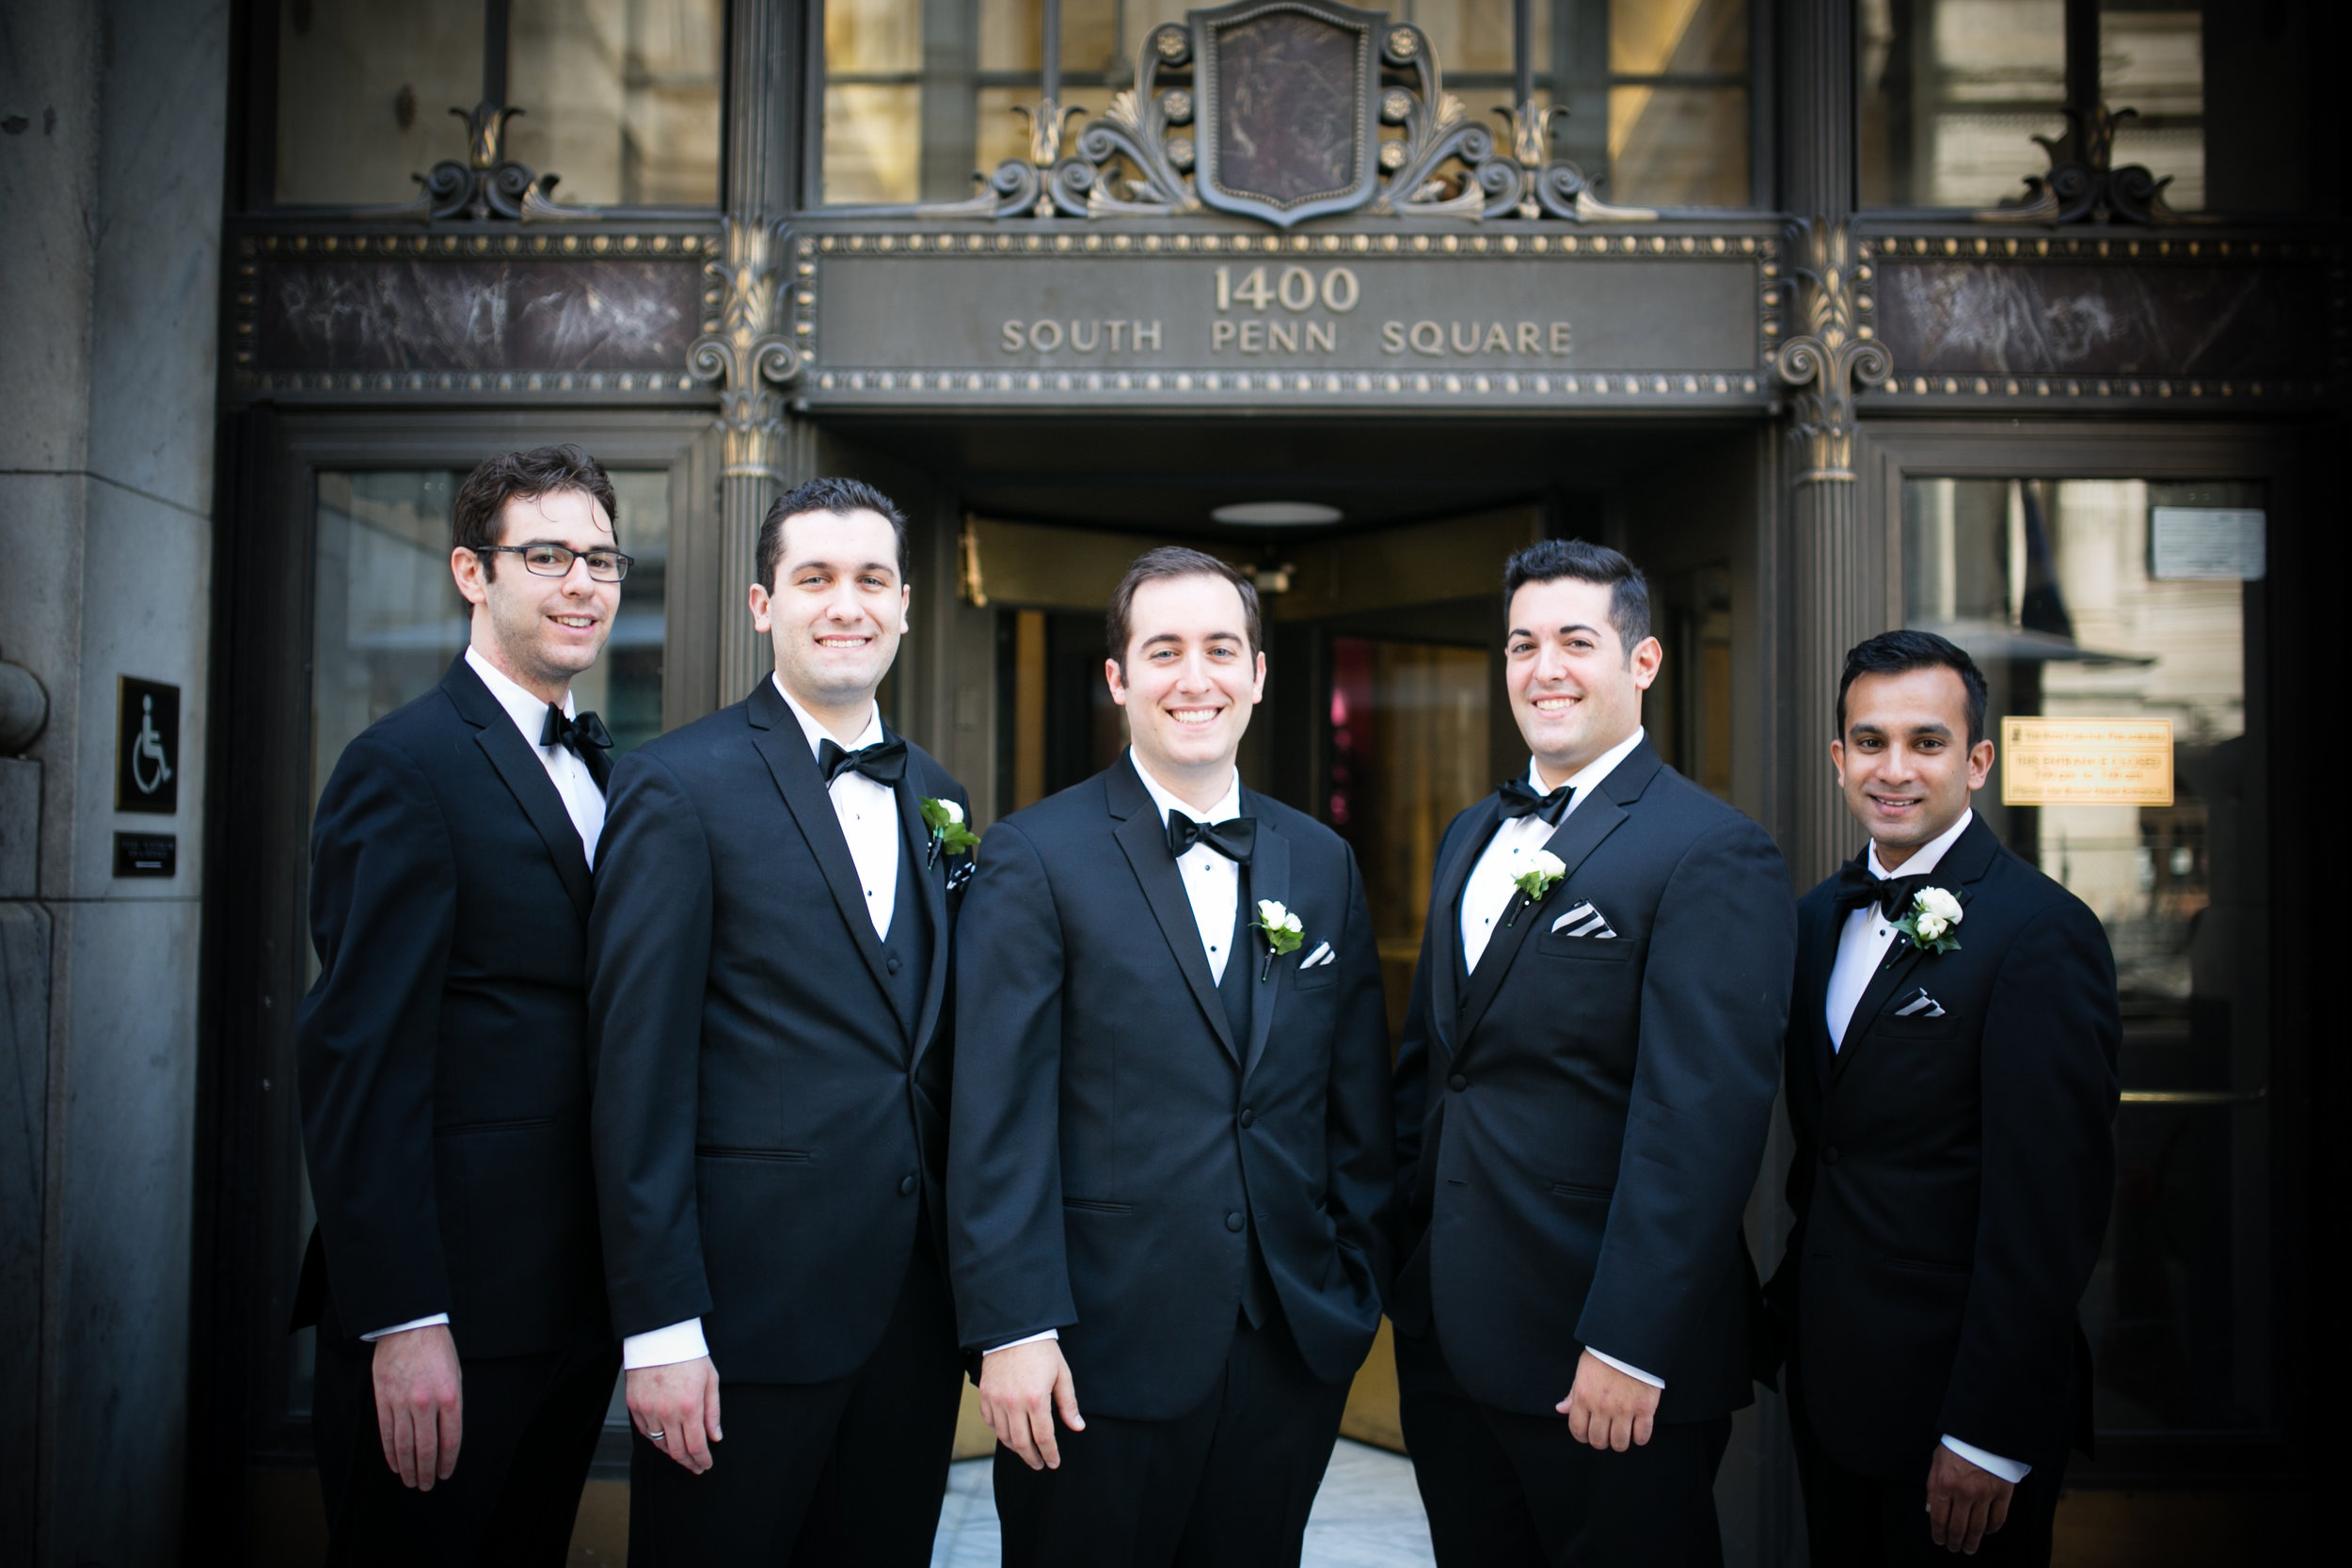 Ritz Carlton Philadelphia Wedding 5.jpg